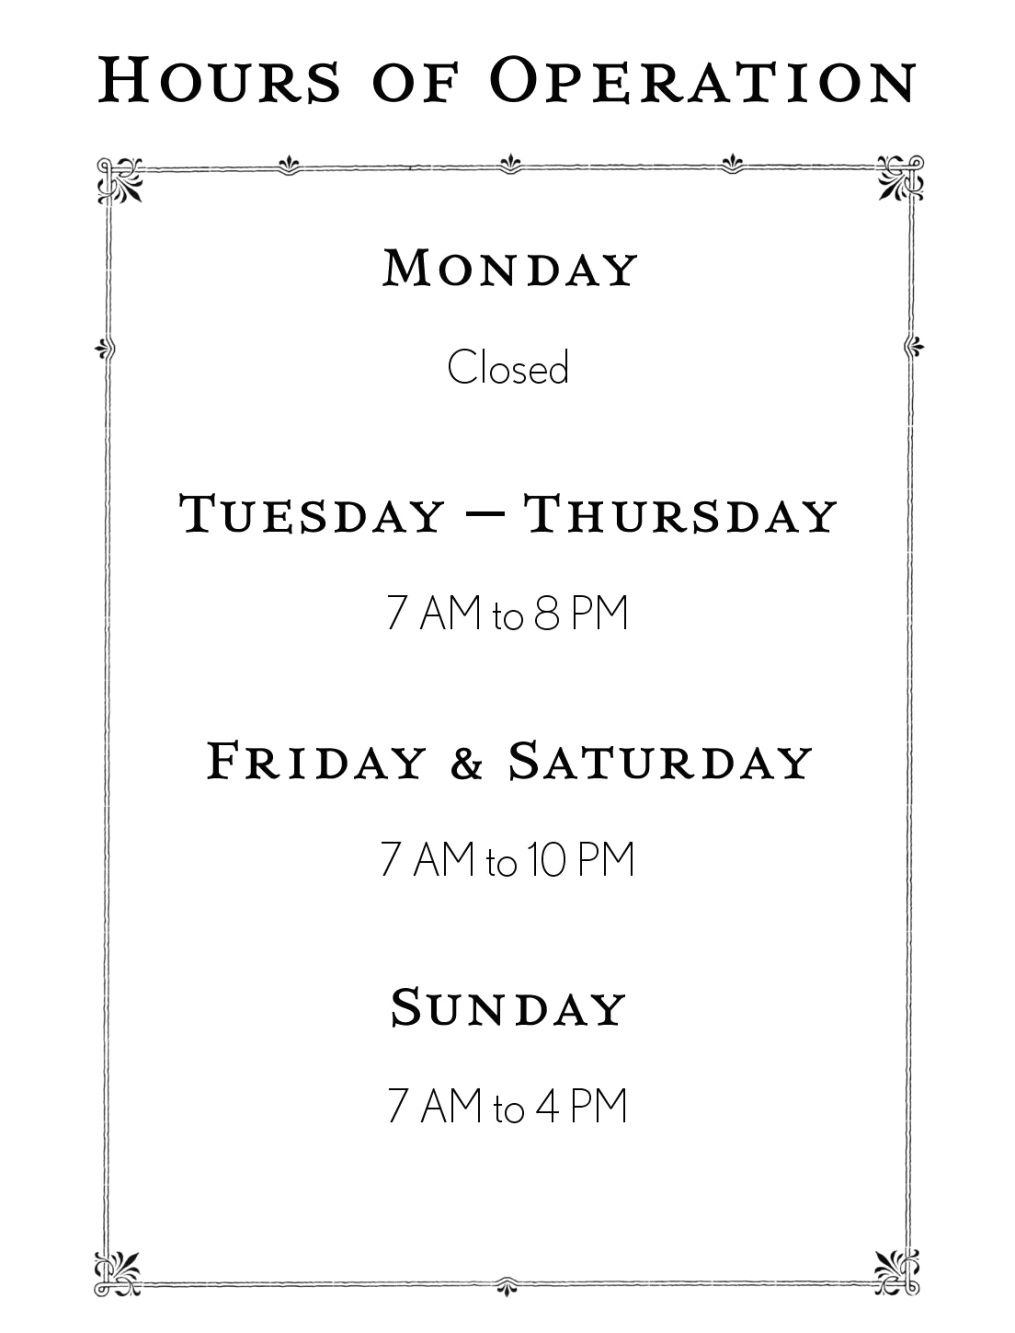 Business Hours Template Microsoft Word Business Letter Throughout Hours Of Operation Template Microsoft W Business Hours Sign Microsoft Office Word Office Word